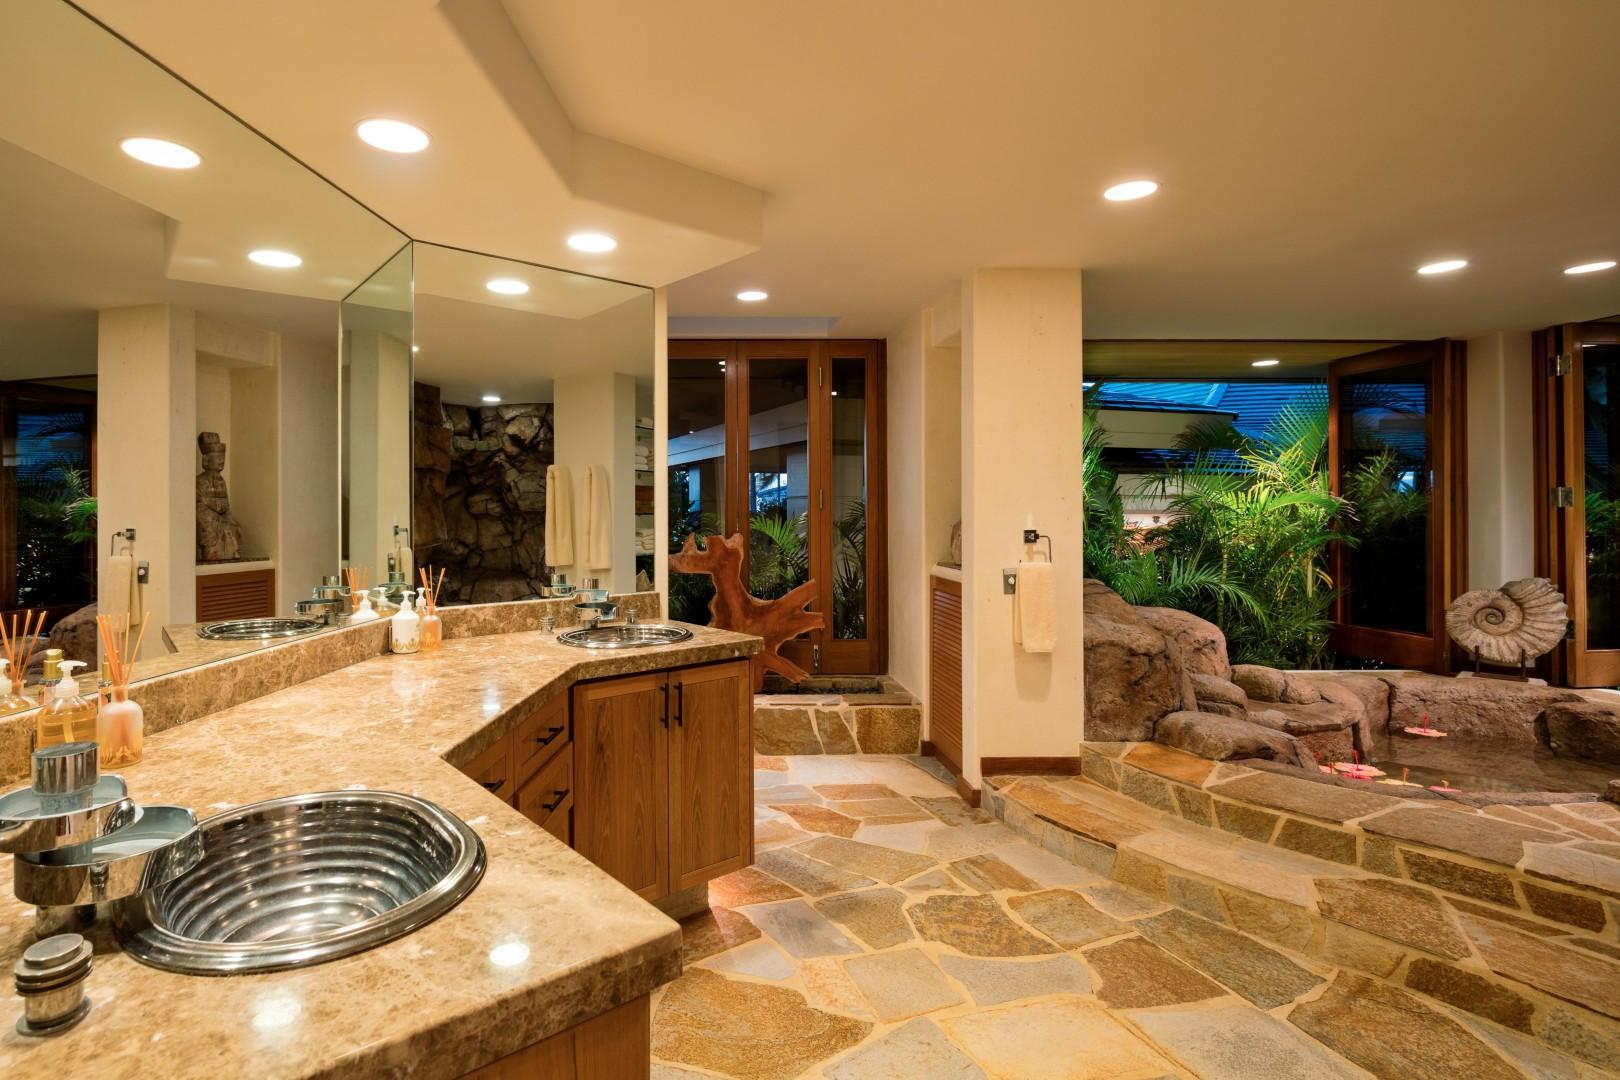 Palatial master bath with dual vanity, fabulous rock soaking tub, walk-in shower, and privacy commode.